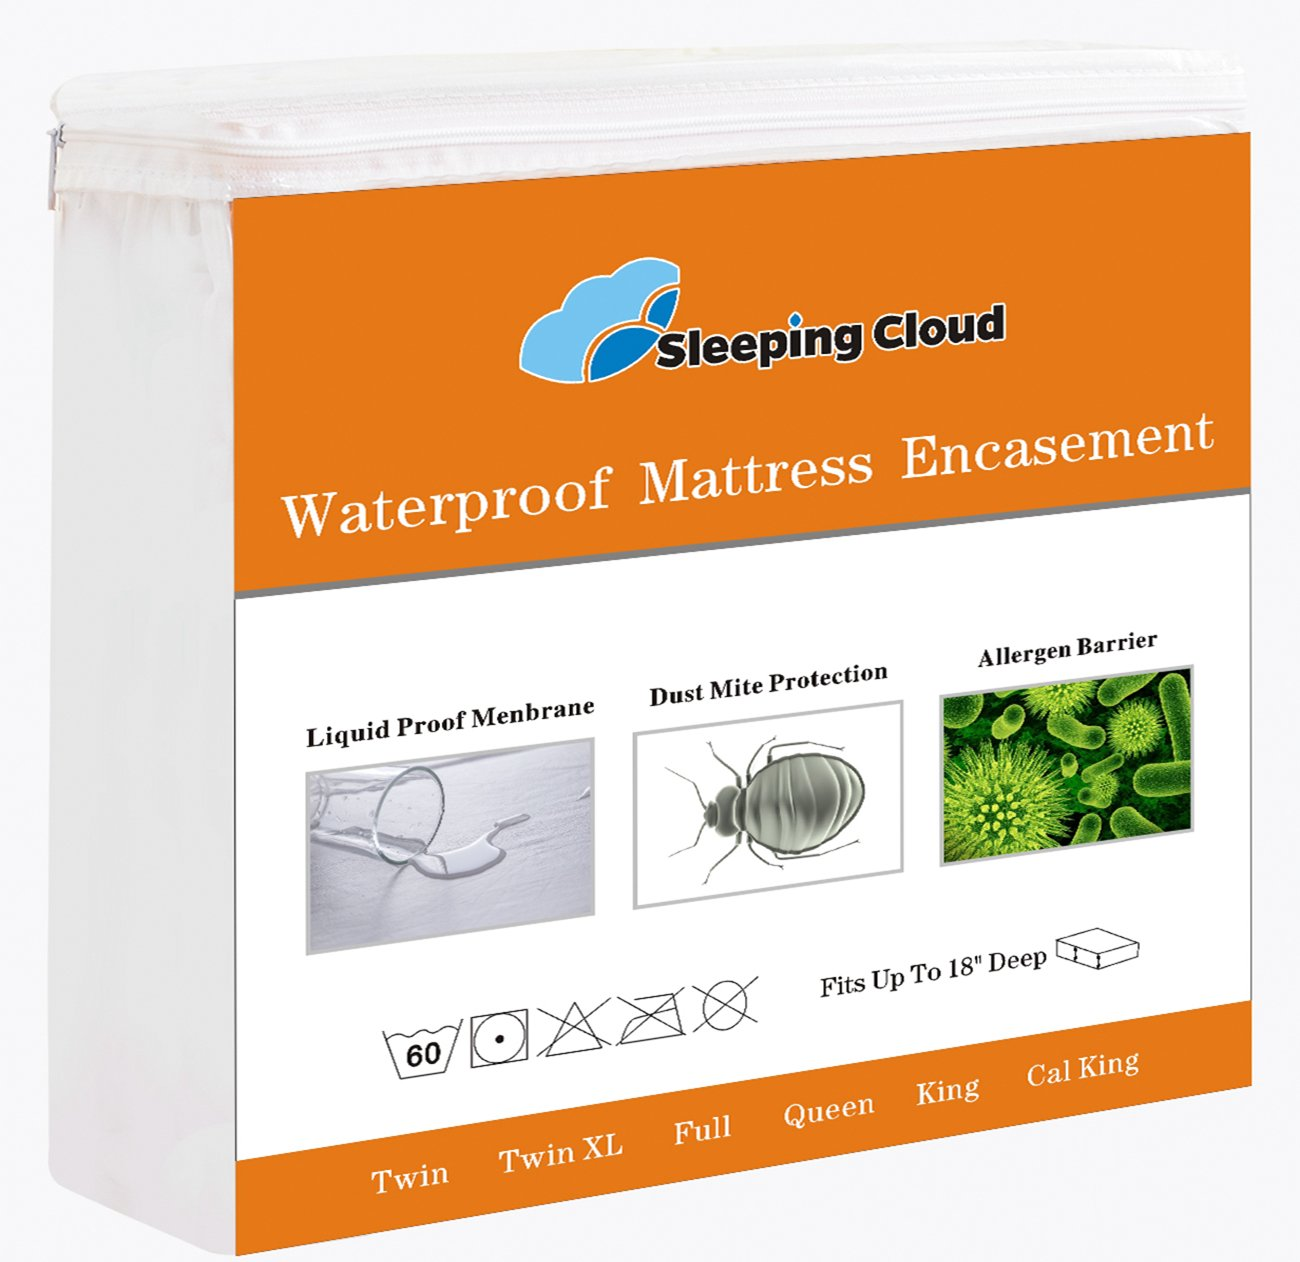 Premium Zippered Mattress Encasement Waterproof Hypoallergenic Breathable Mattress Protector Cover, Bedbugs / Dust Mites / Fluids Proof - 15-Year Warranty, Vinyl Free - California King Size / White